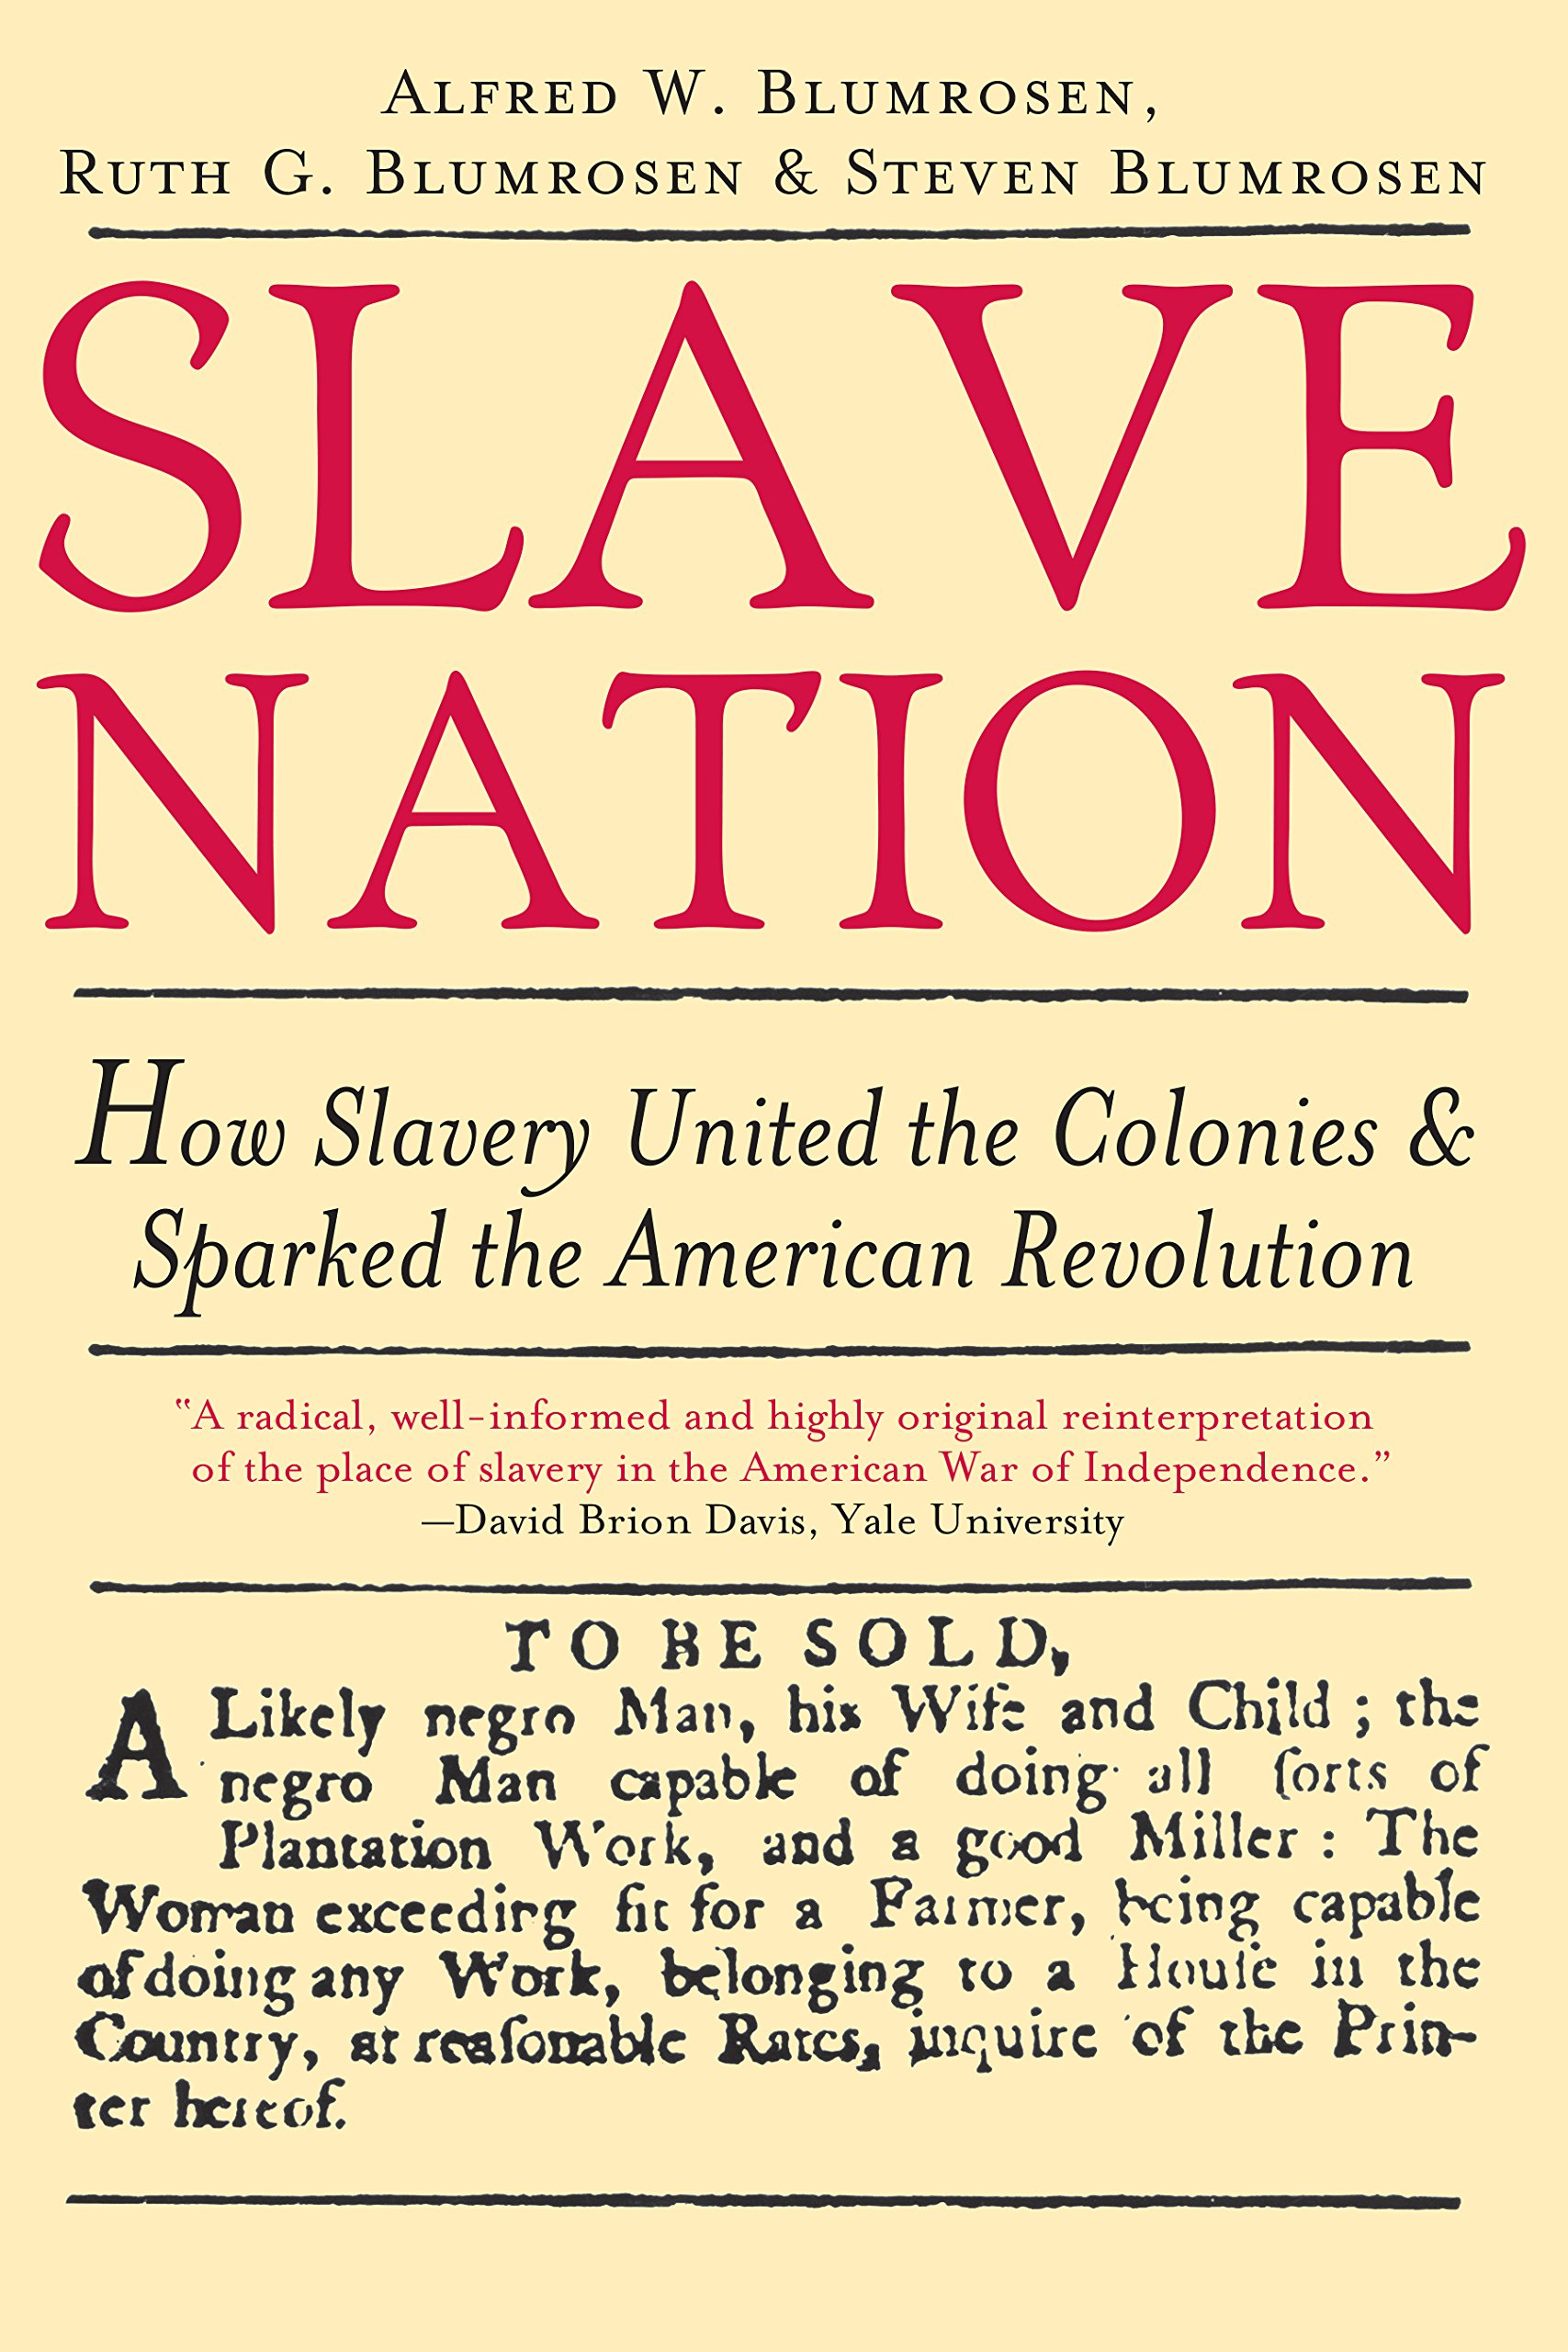 slavery in the american colonies essay